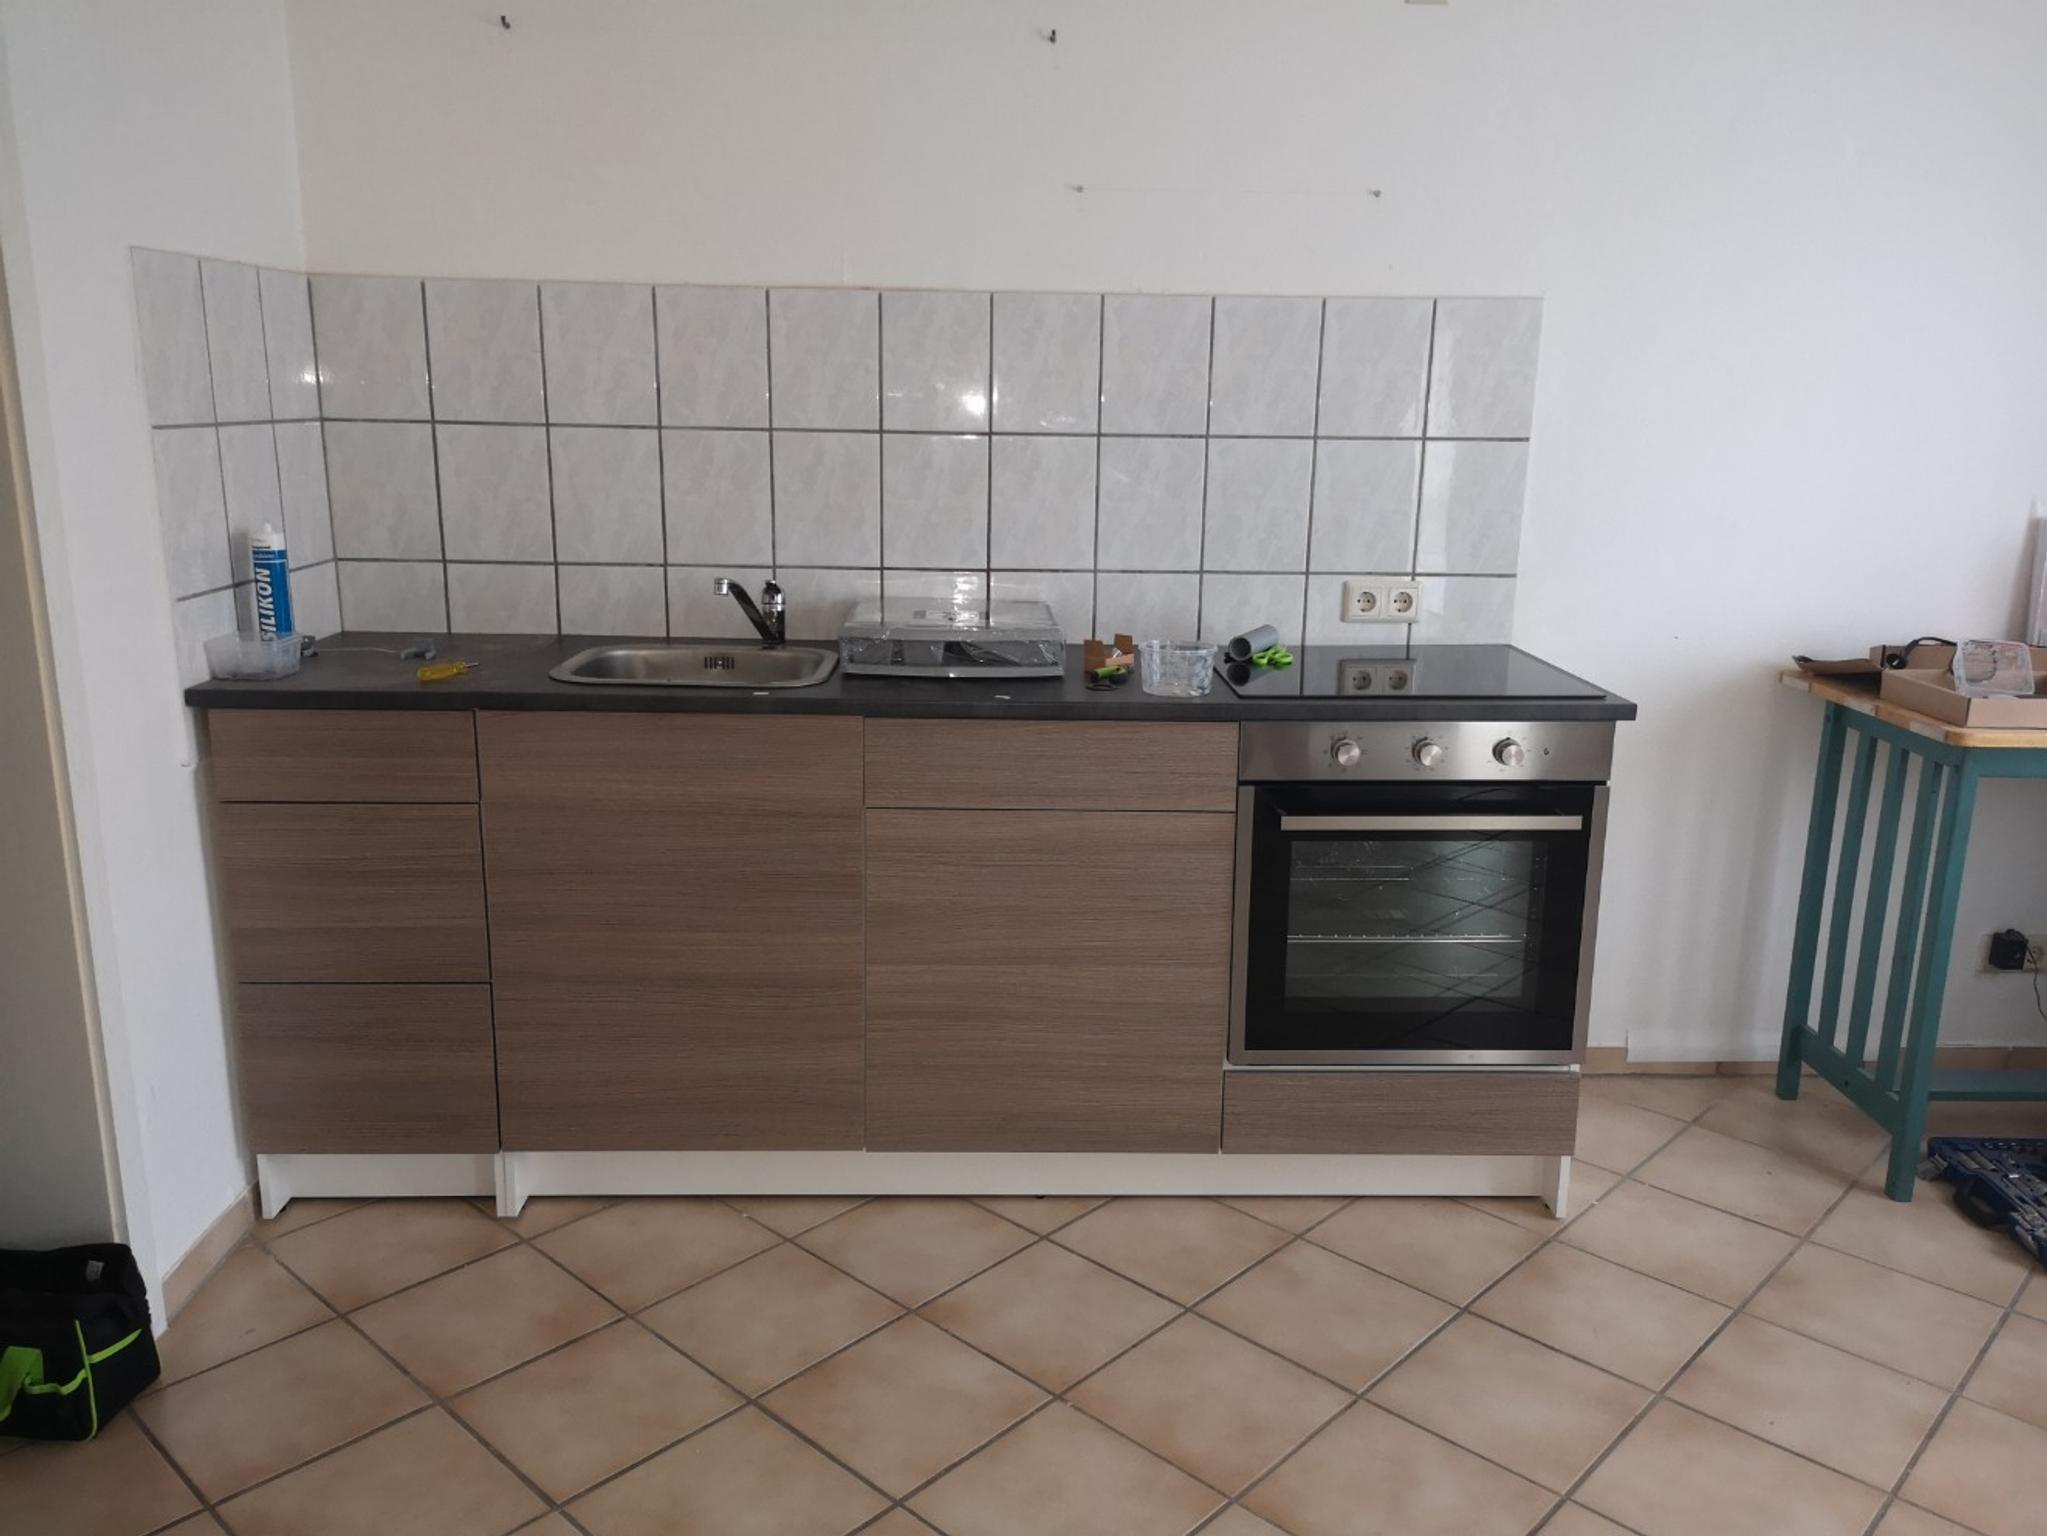 Knoxhult Ikea Kuche In 53547 Hummerich For 275 00 For Sale Shpock